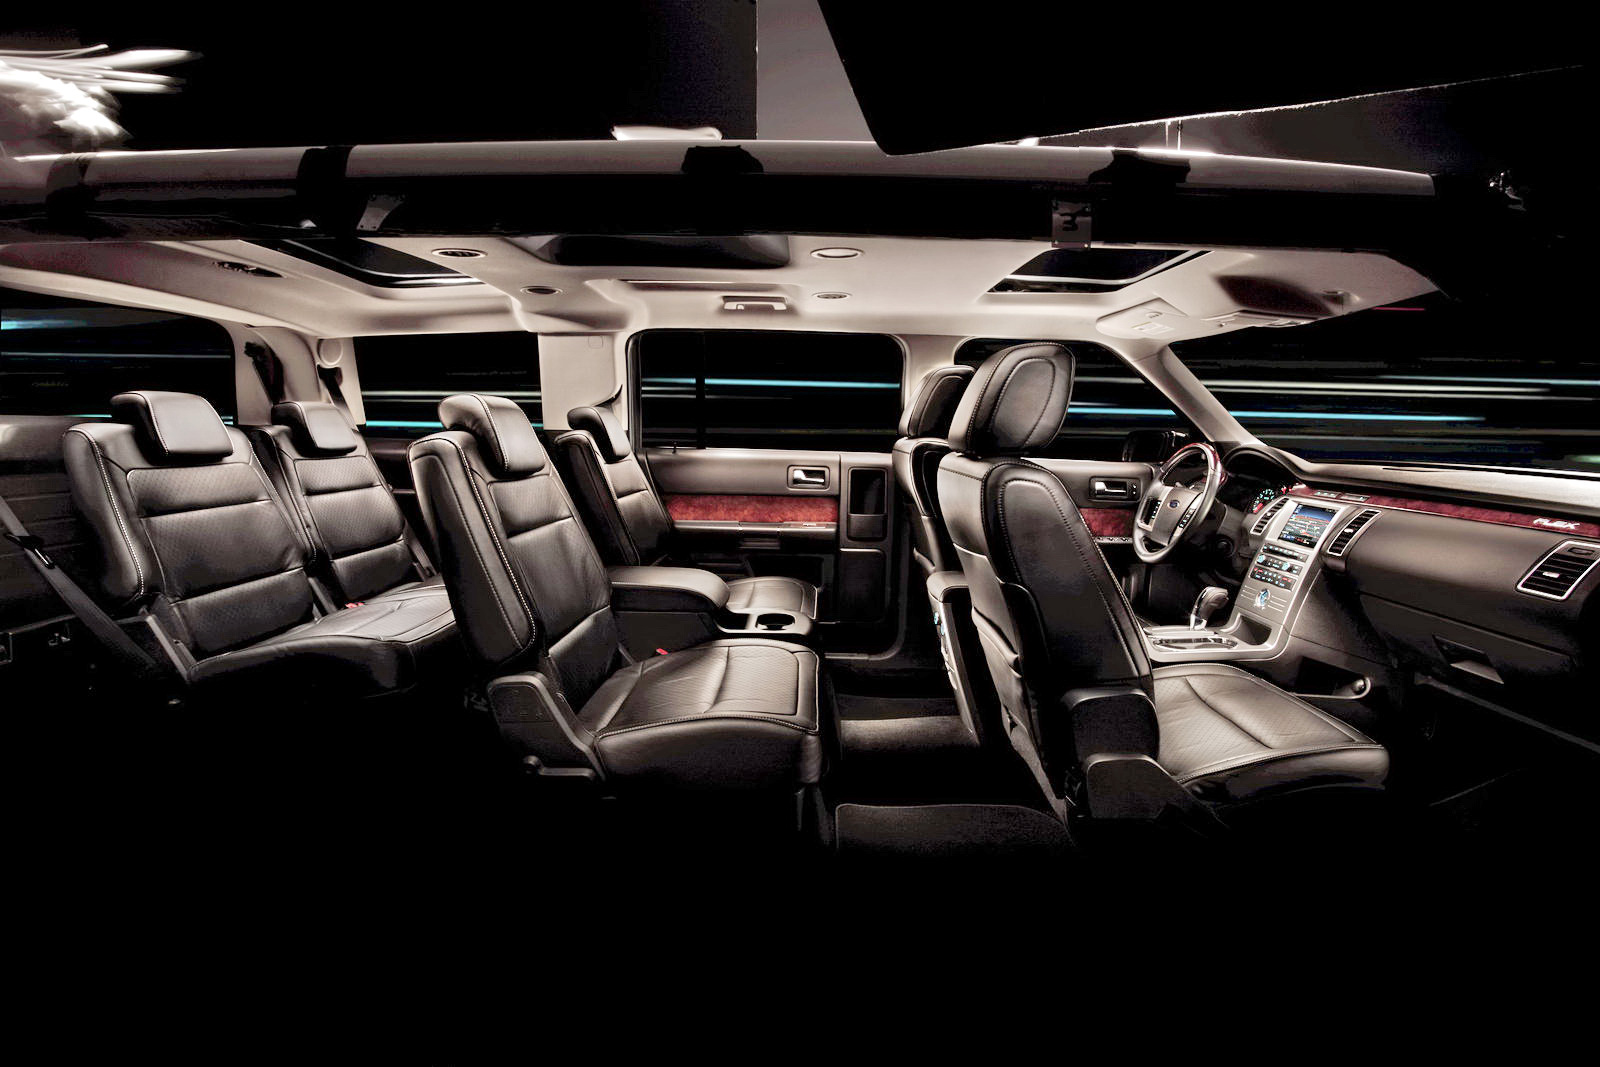 Ford Flex image #6